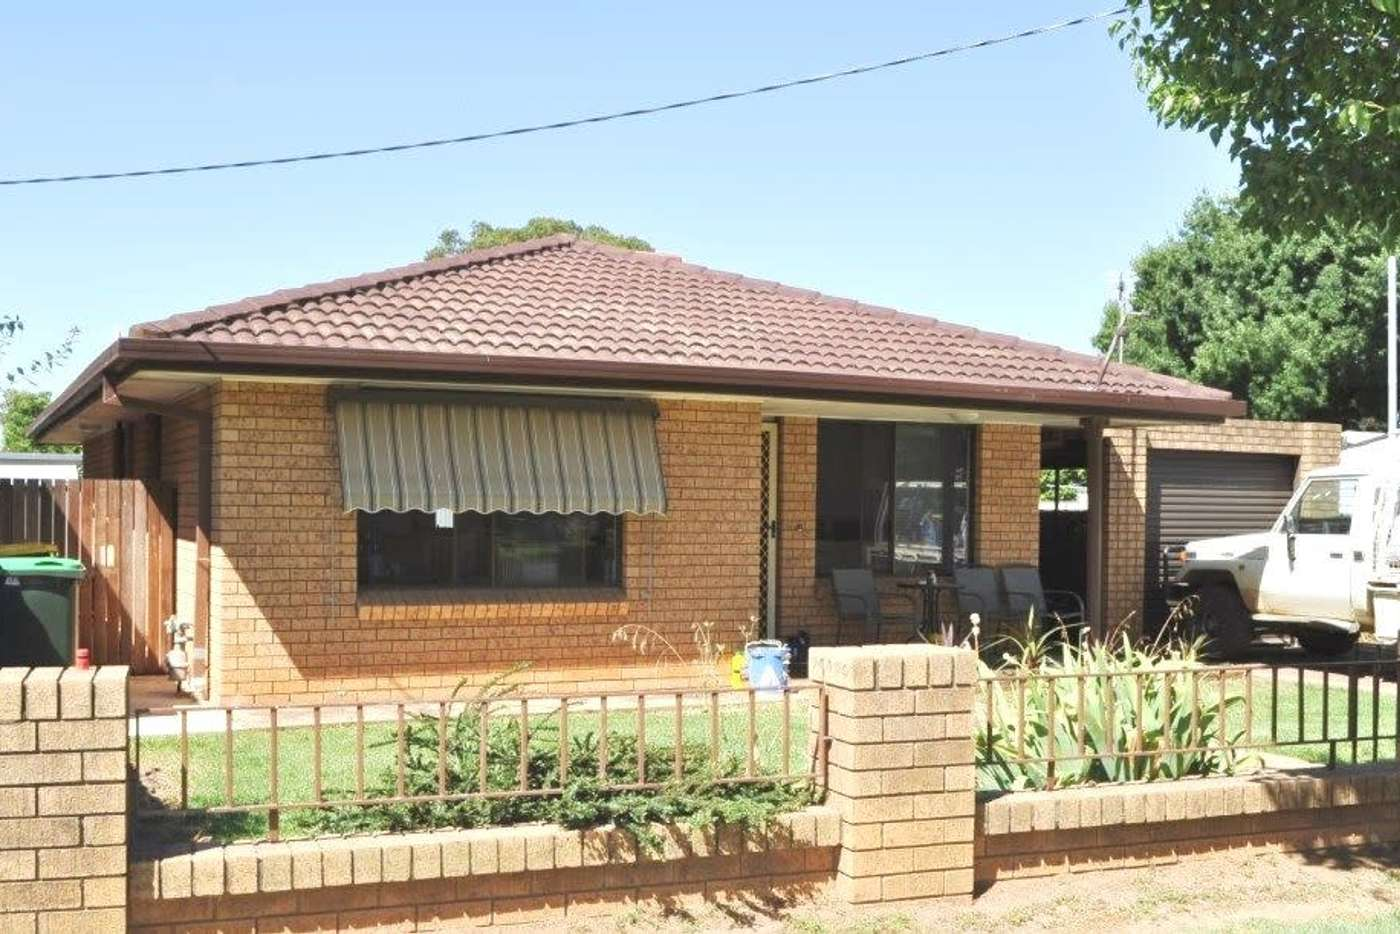 Main view of Homely house listing, 18 Gundagai Road, Cootamundra NSW 2590